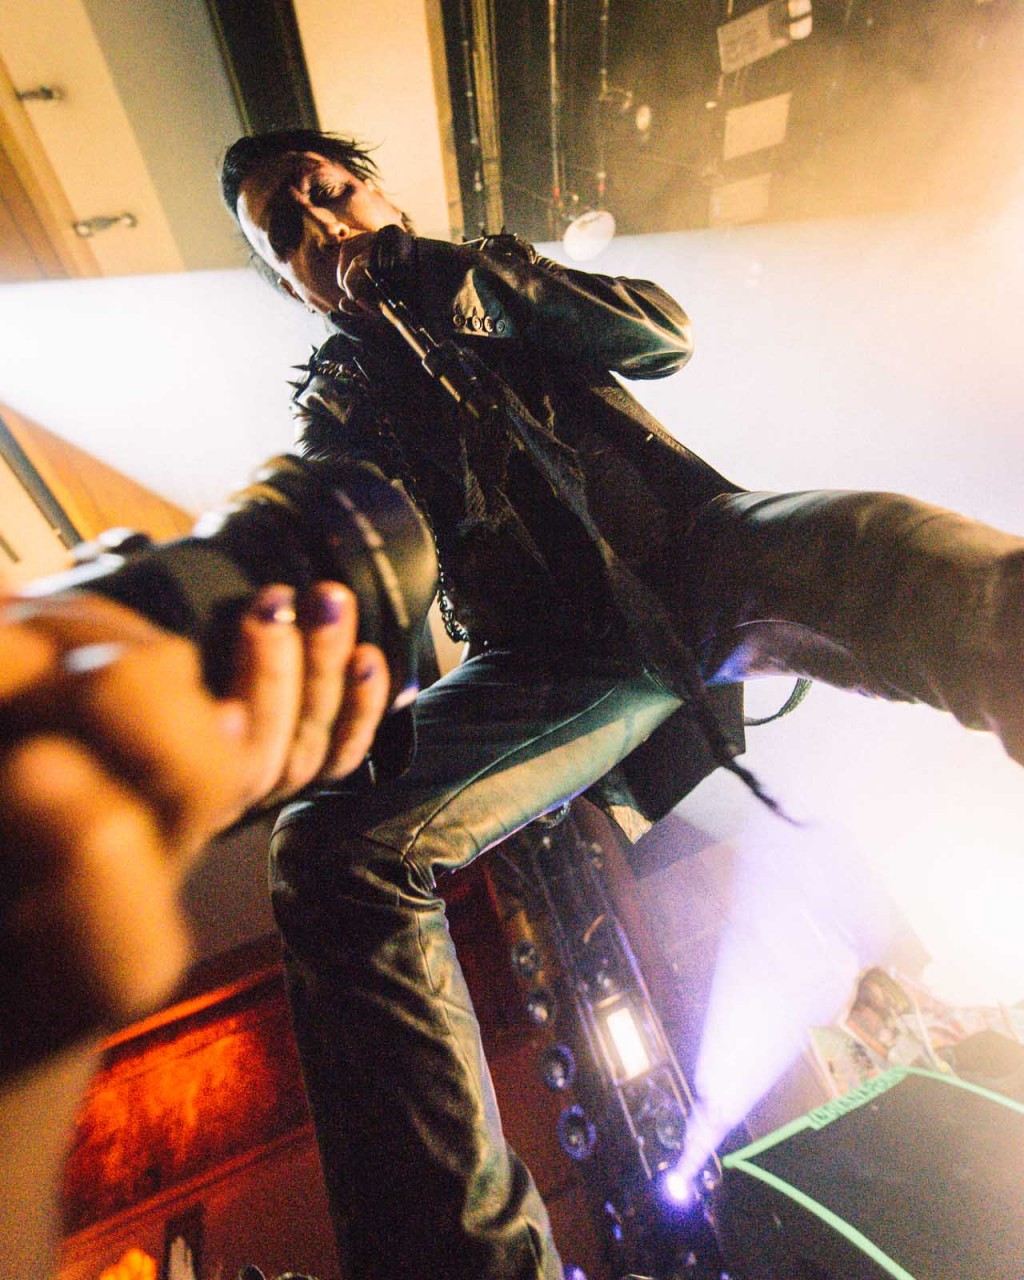 marilyn_manson_live_egyptian_room_indianapolis_2013-26